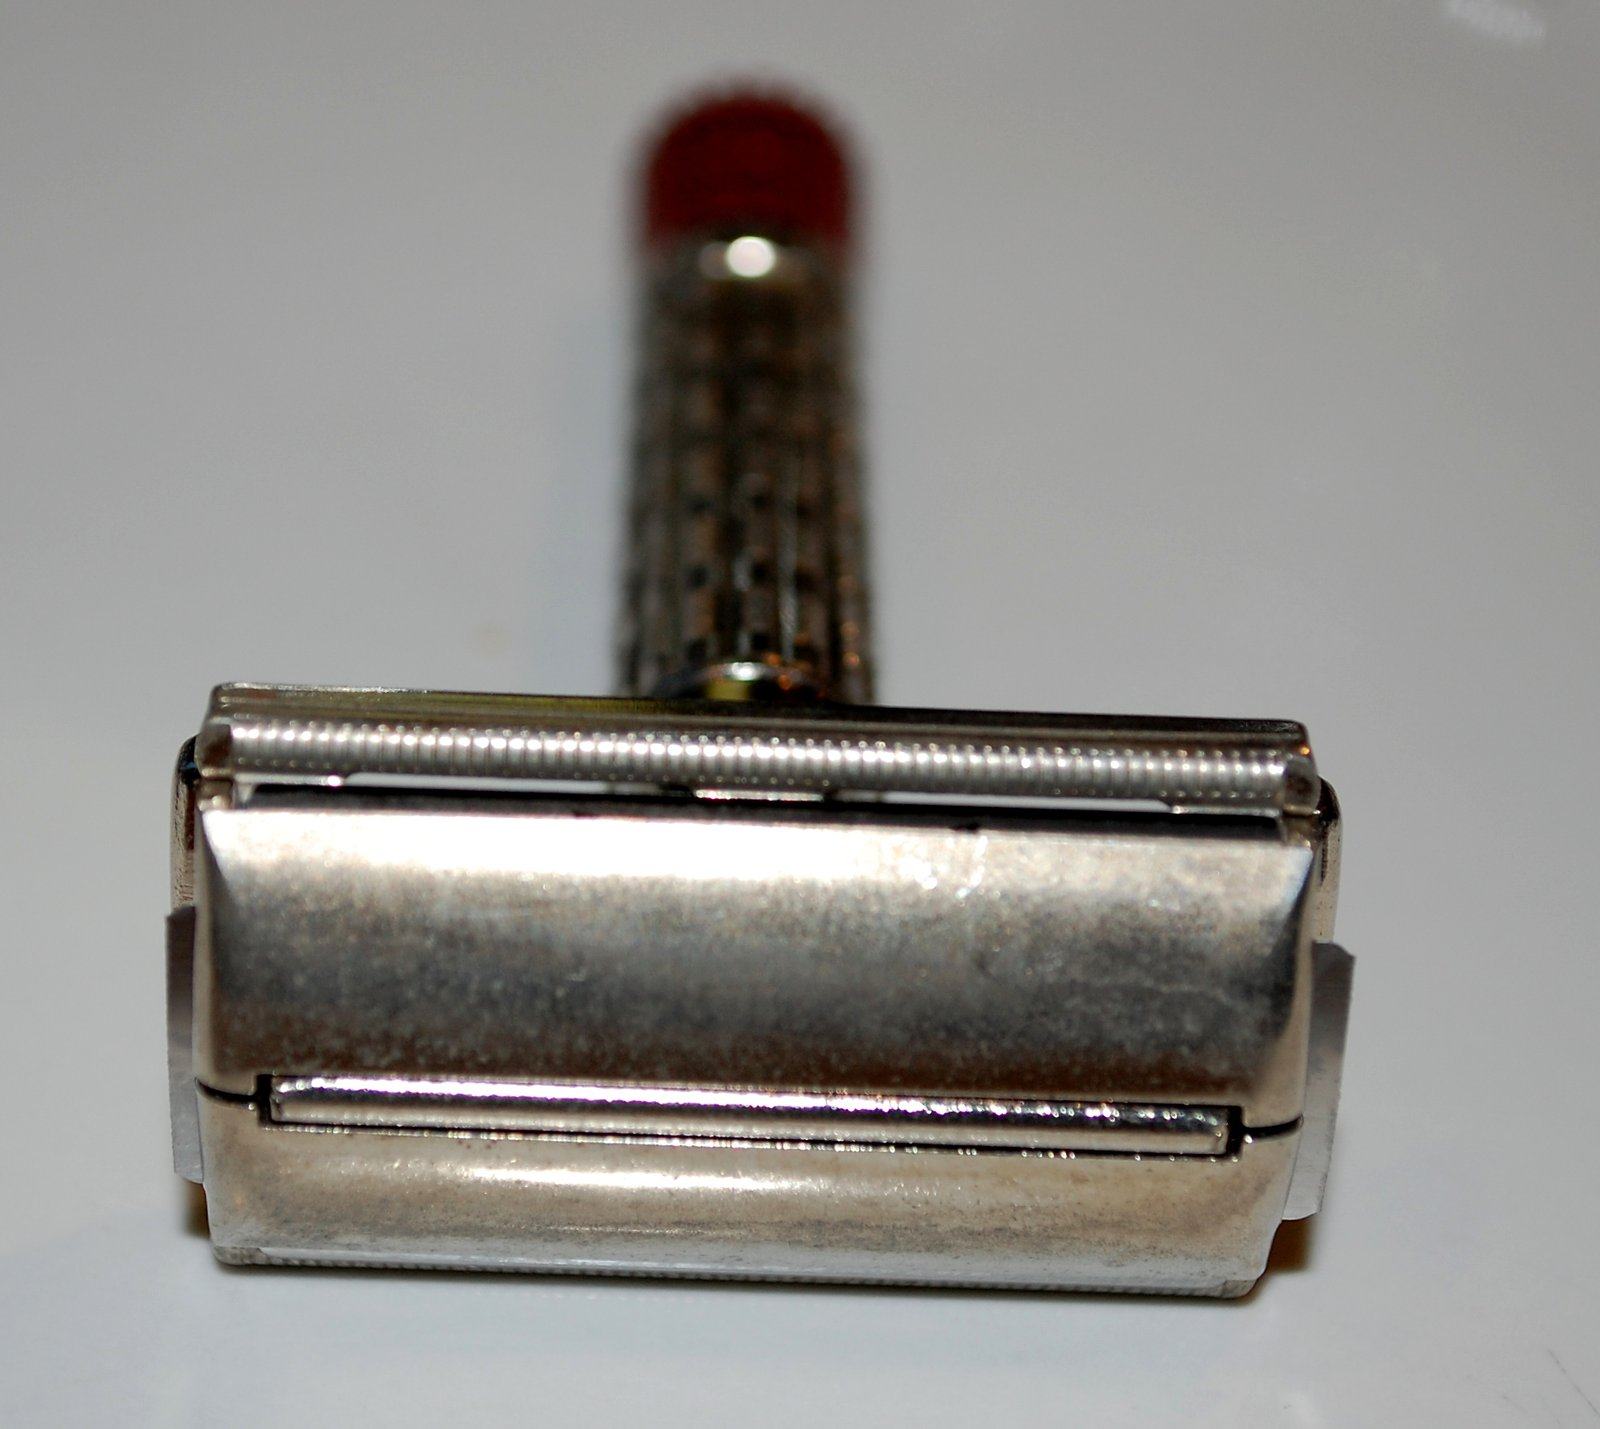 Gillette Red Tip Razor From 1950s